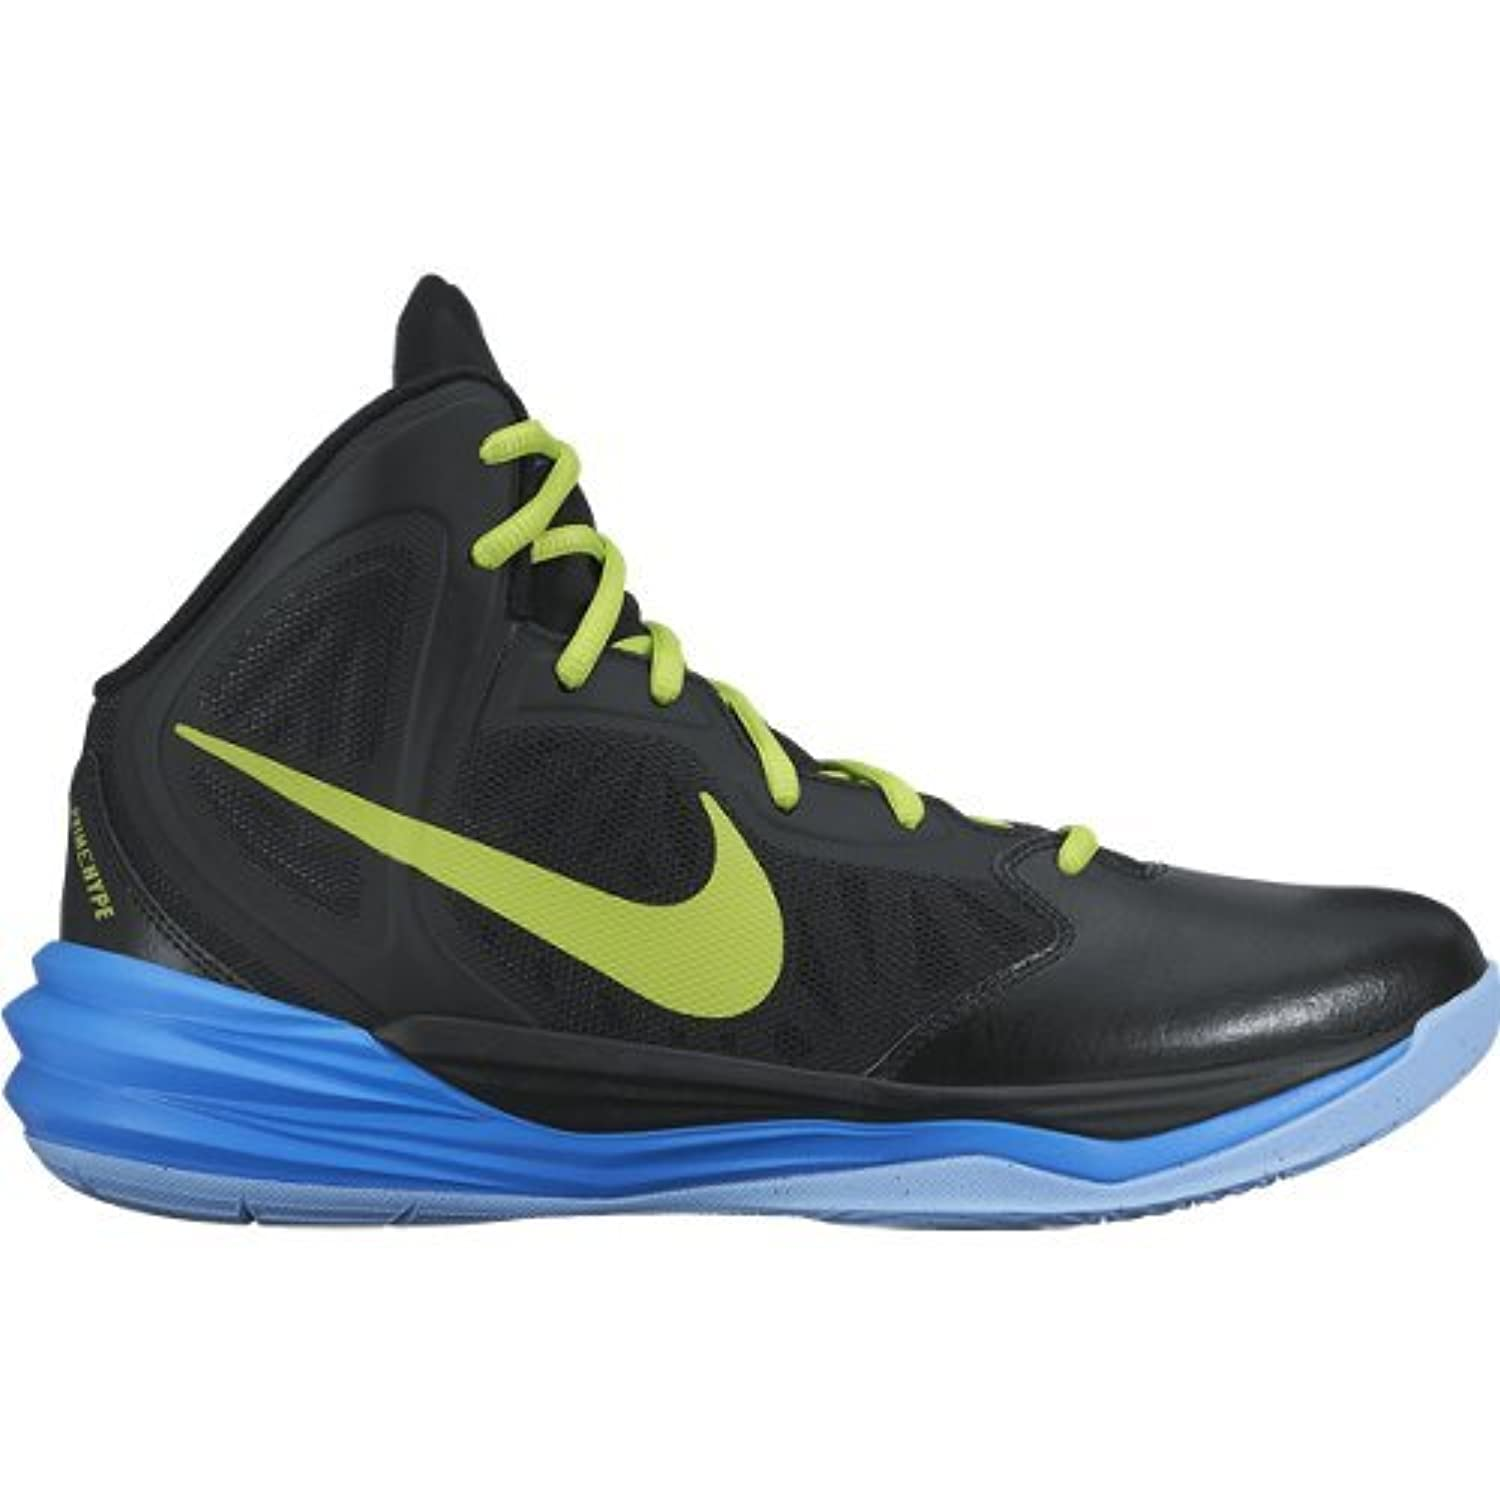 NIKE PRIME HYPE DF MEN'S BASKETBALL SHOES 683705-007 (US 11)